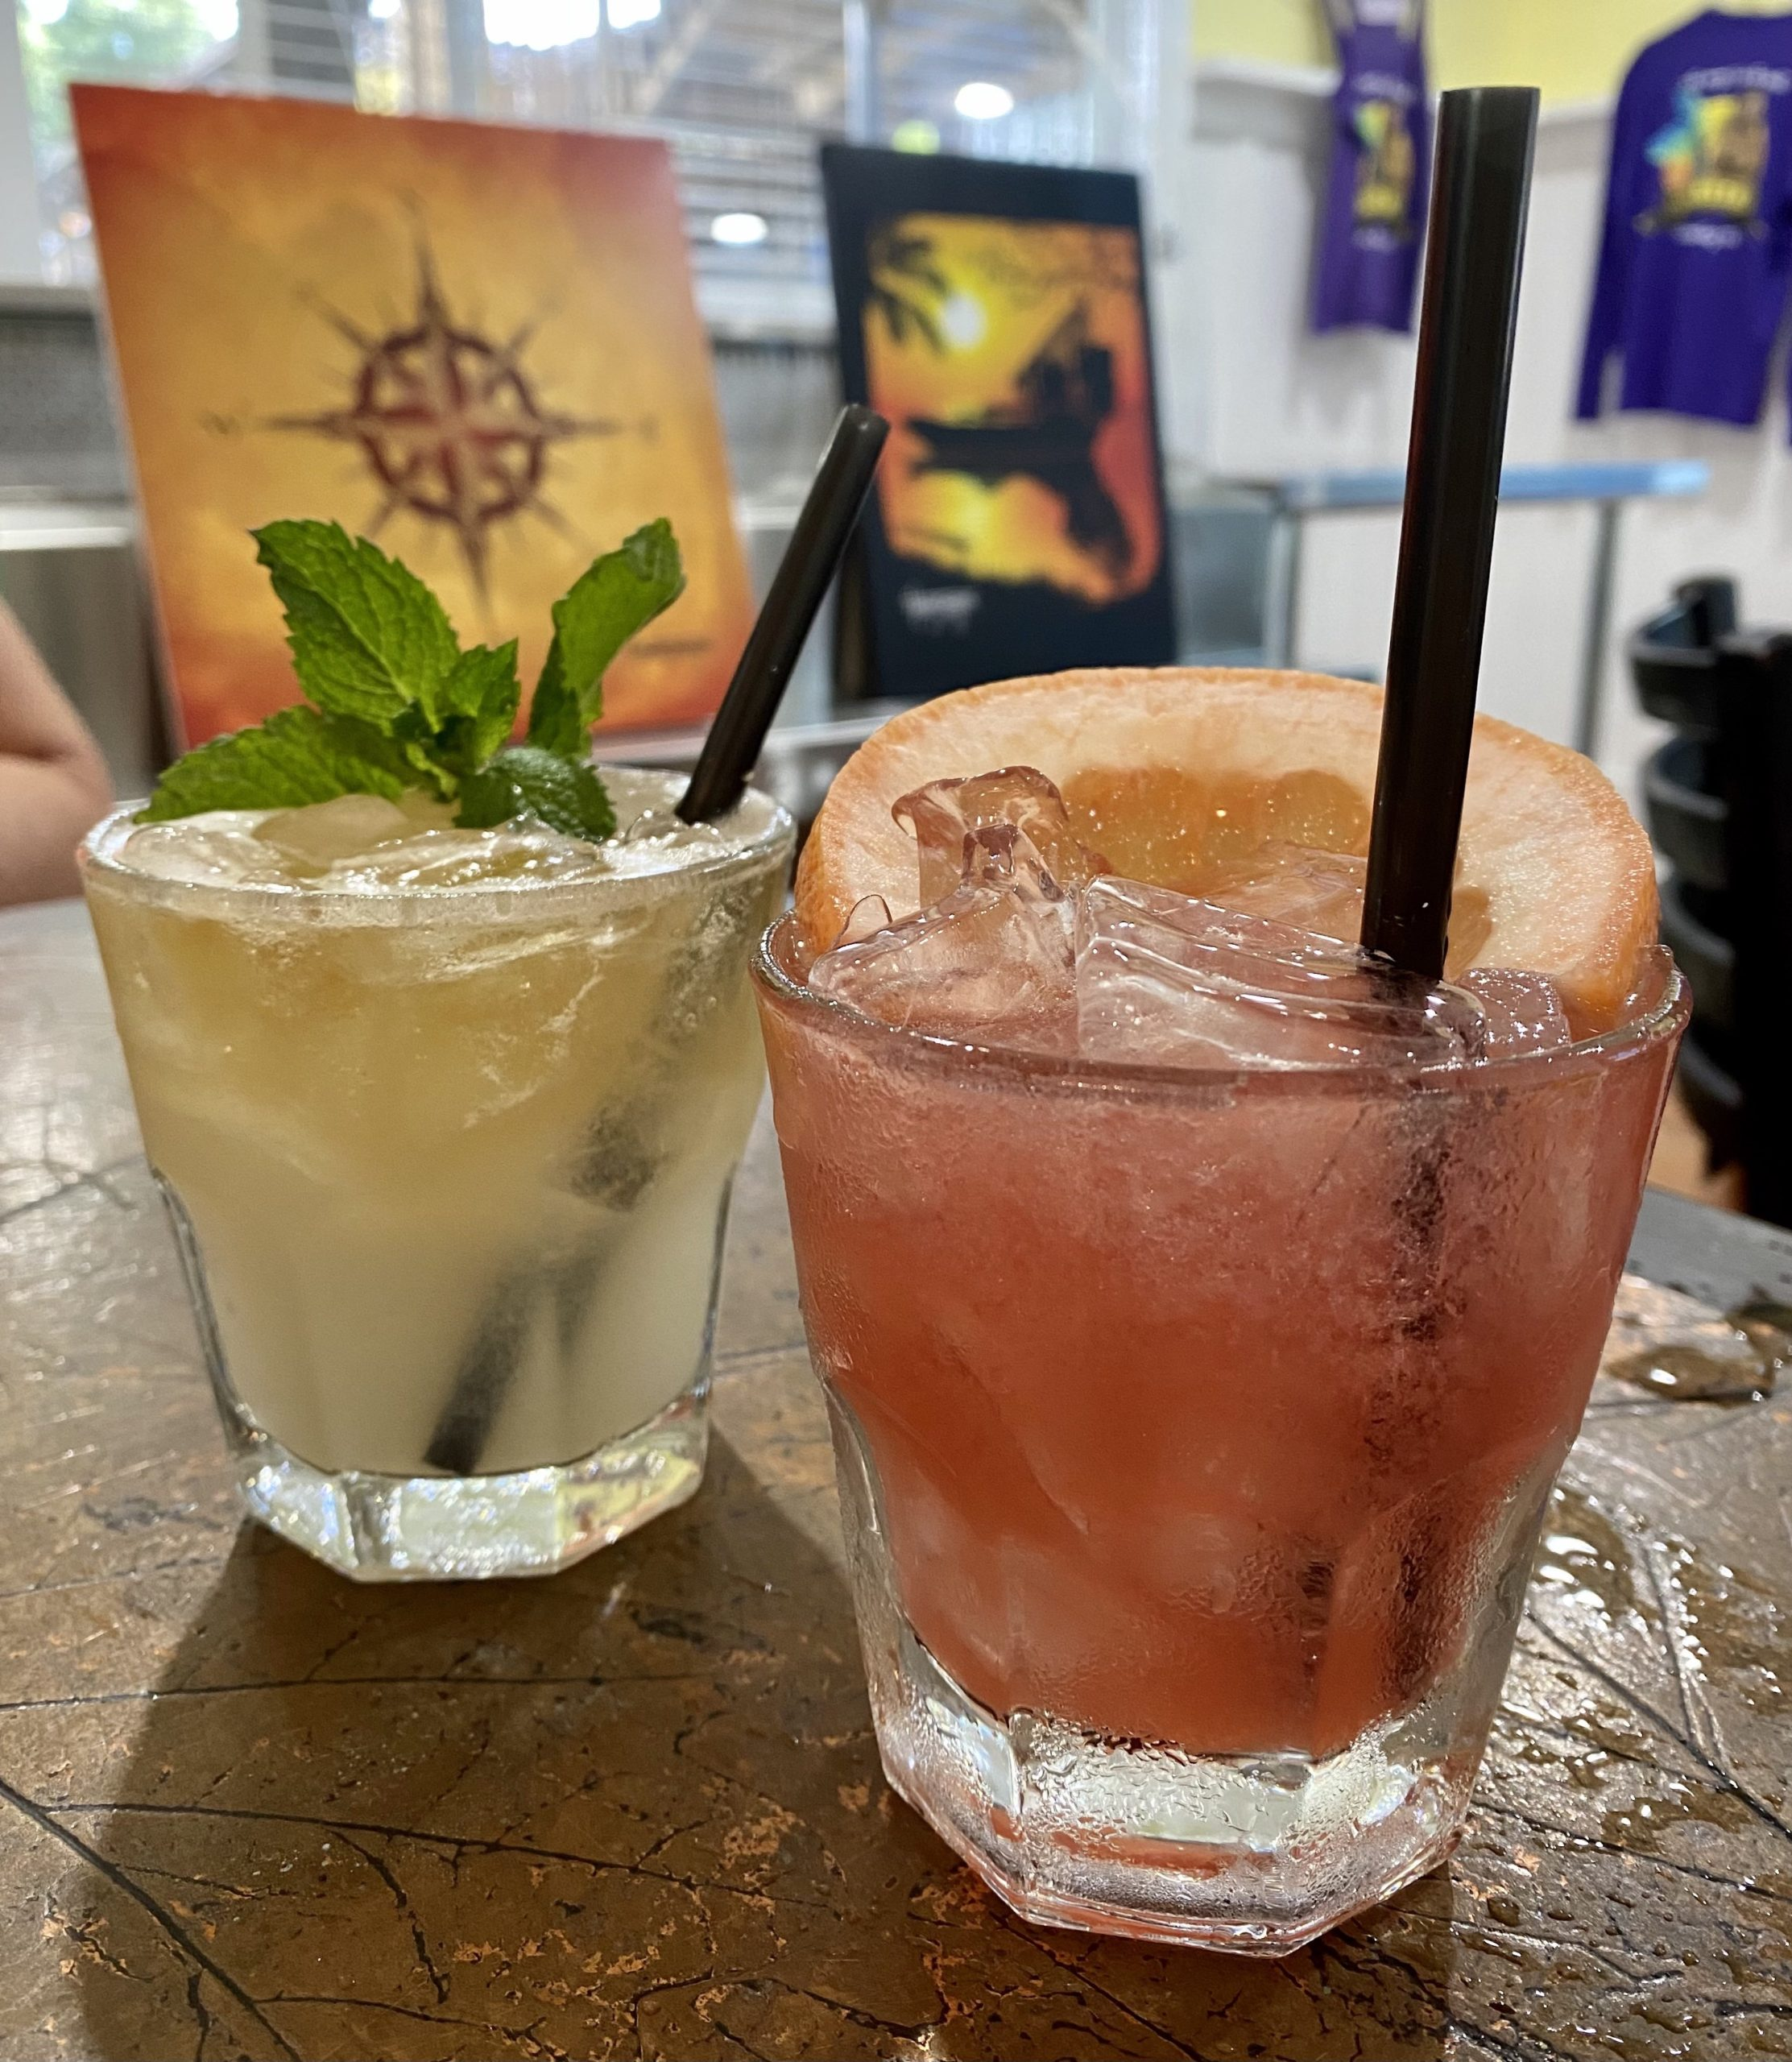 Mullet's Mai Tai and No Diablo Cocktails